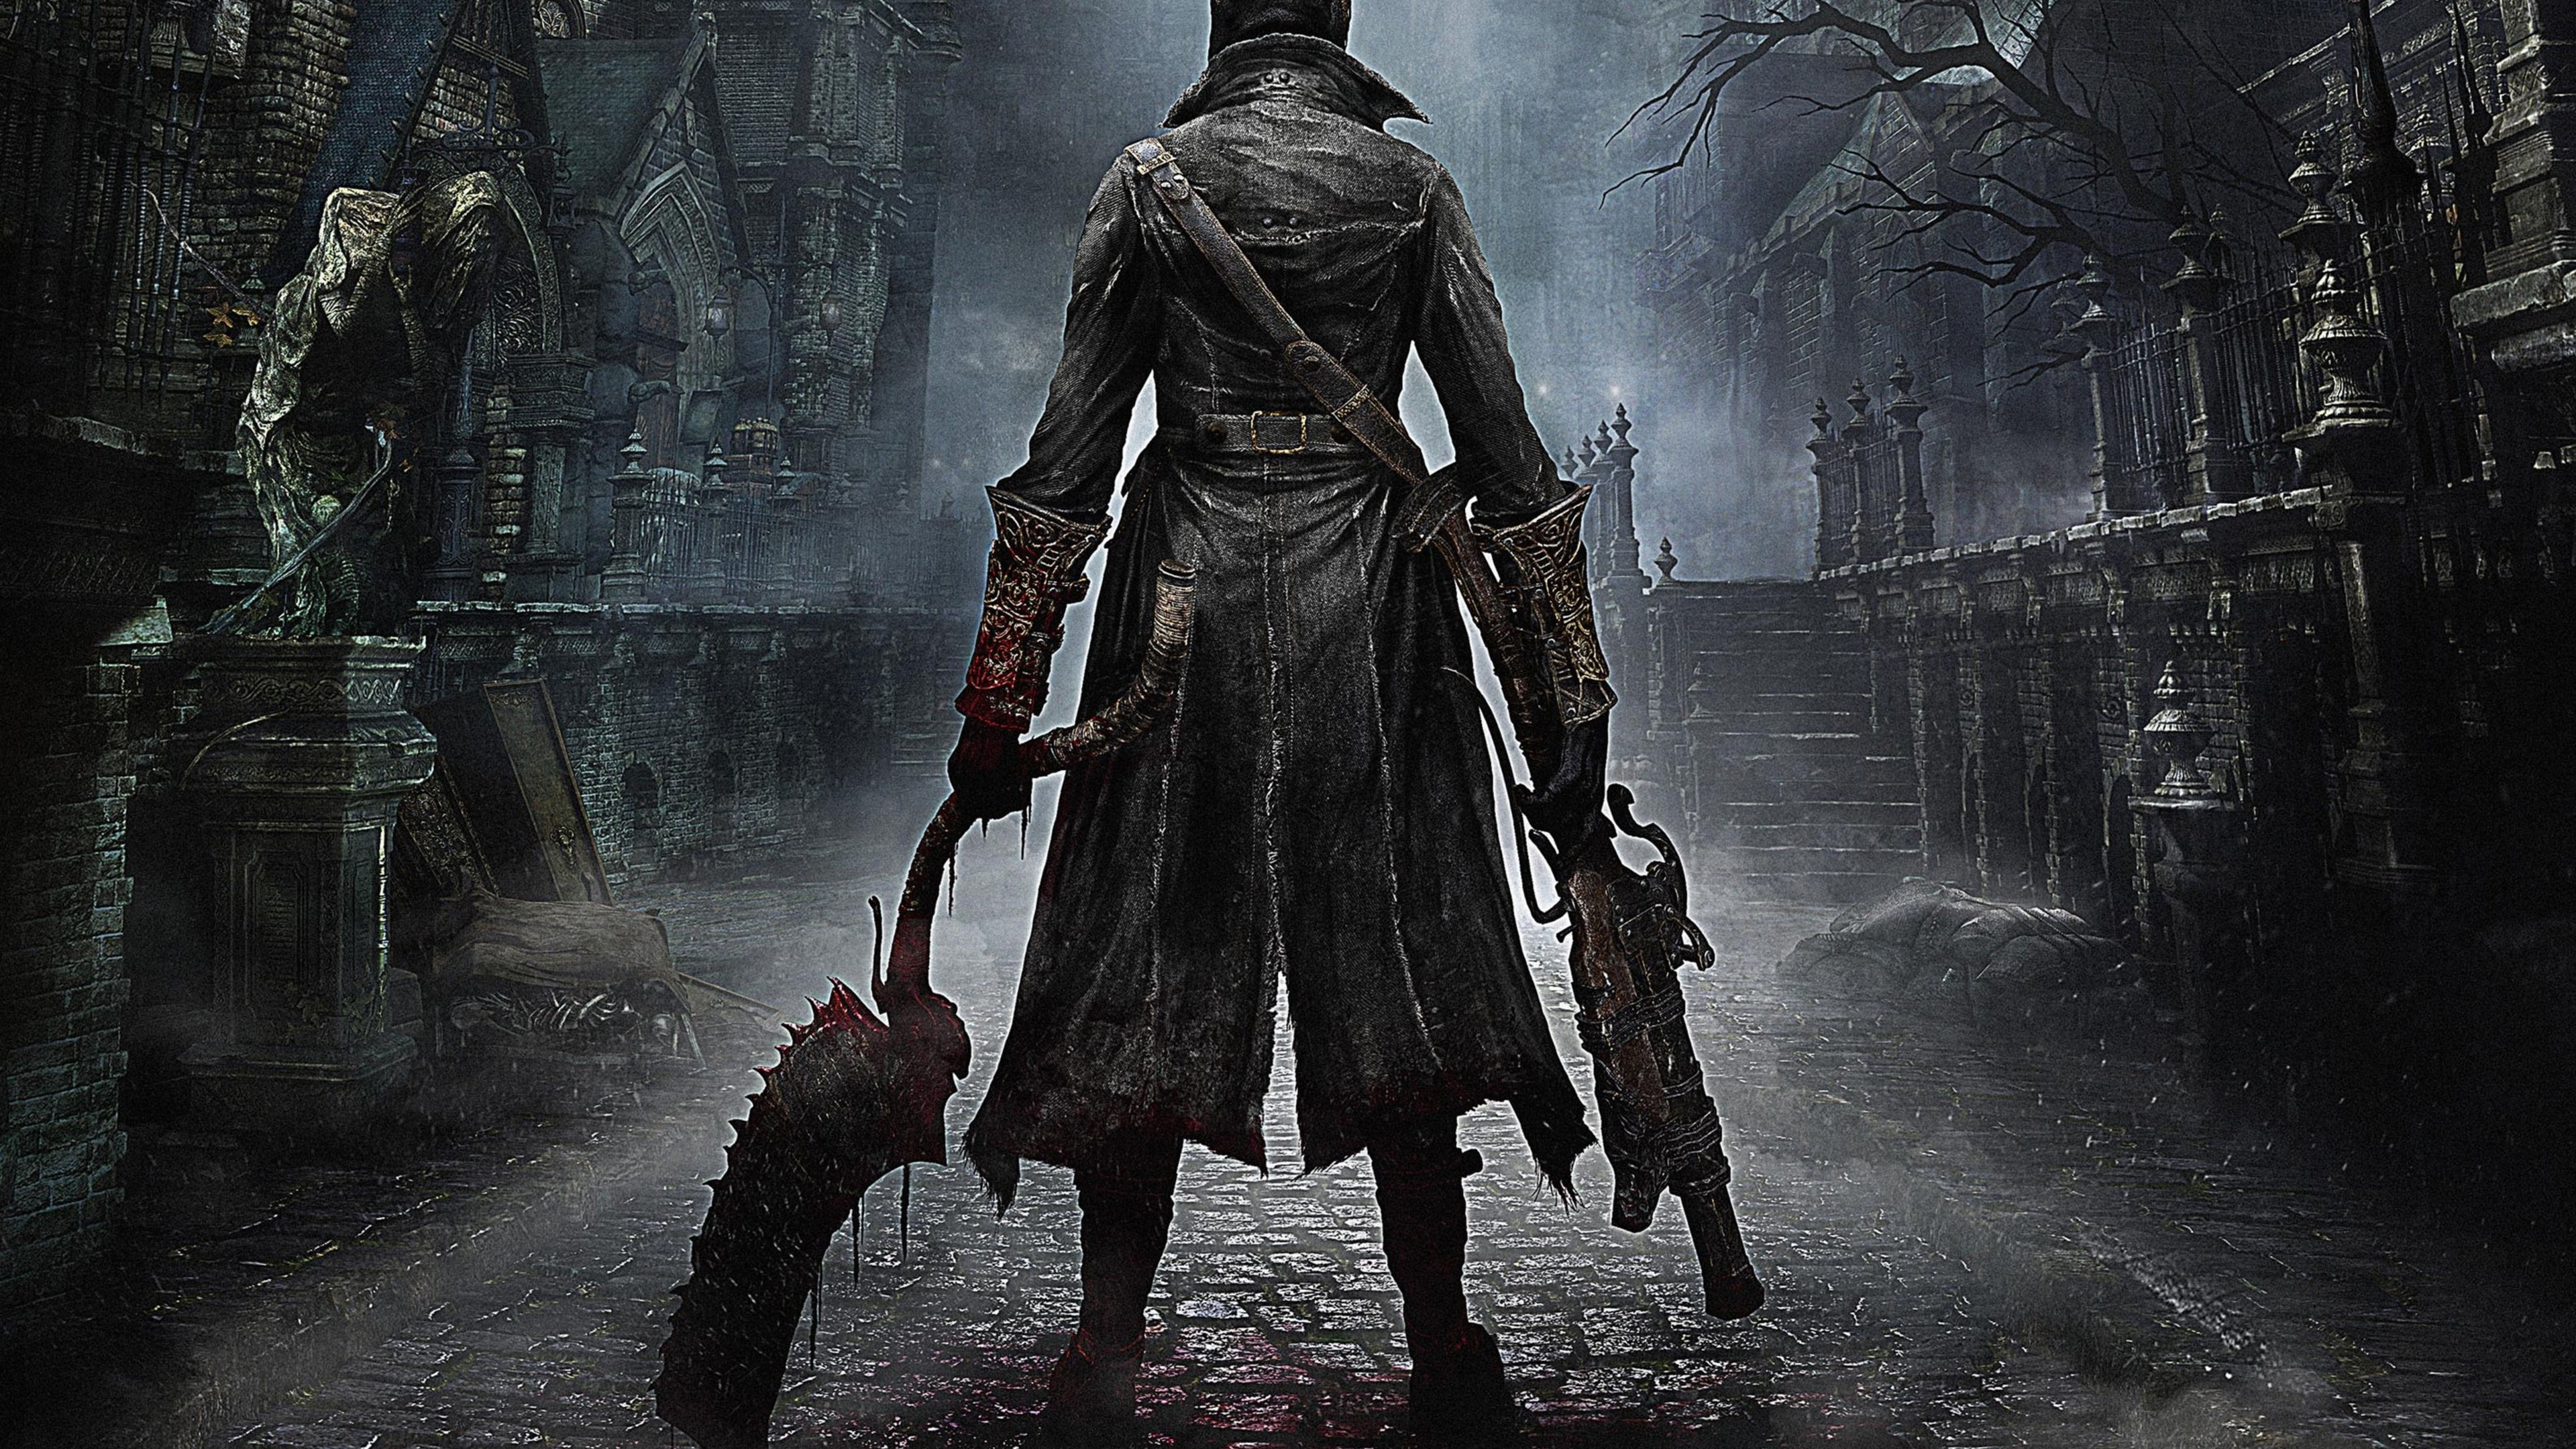 Wallpaper 4k Bloodborne Ps4 Game Games Wallpapers Ps Games Wallpapers